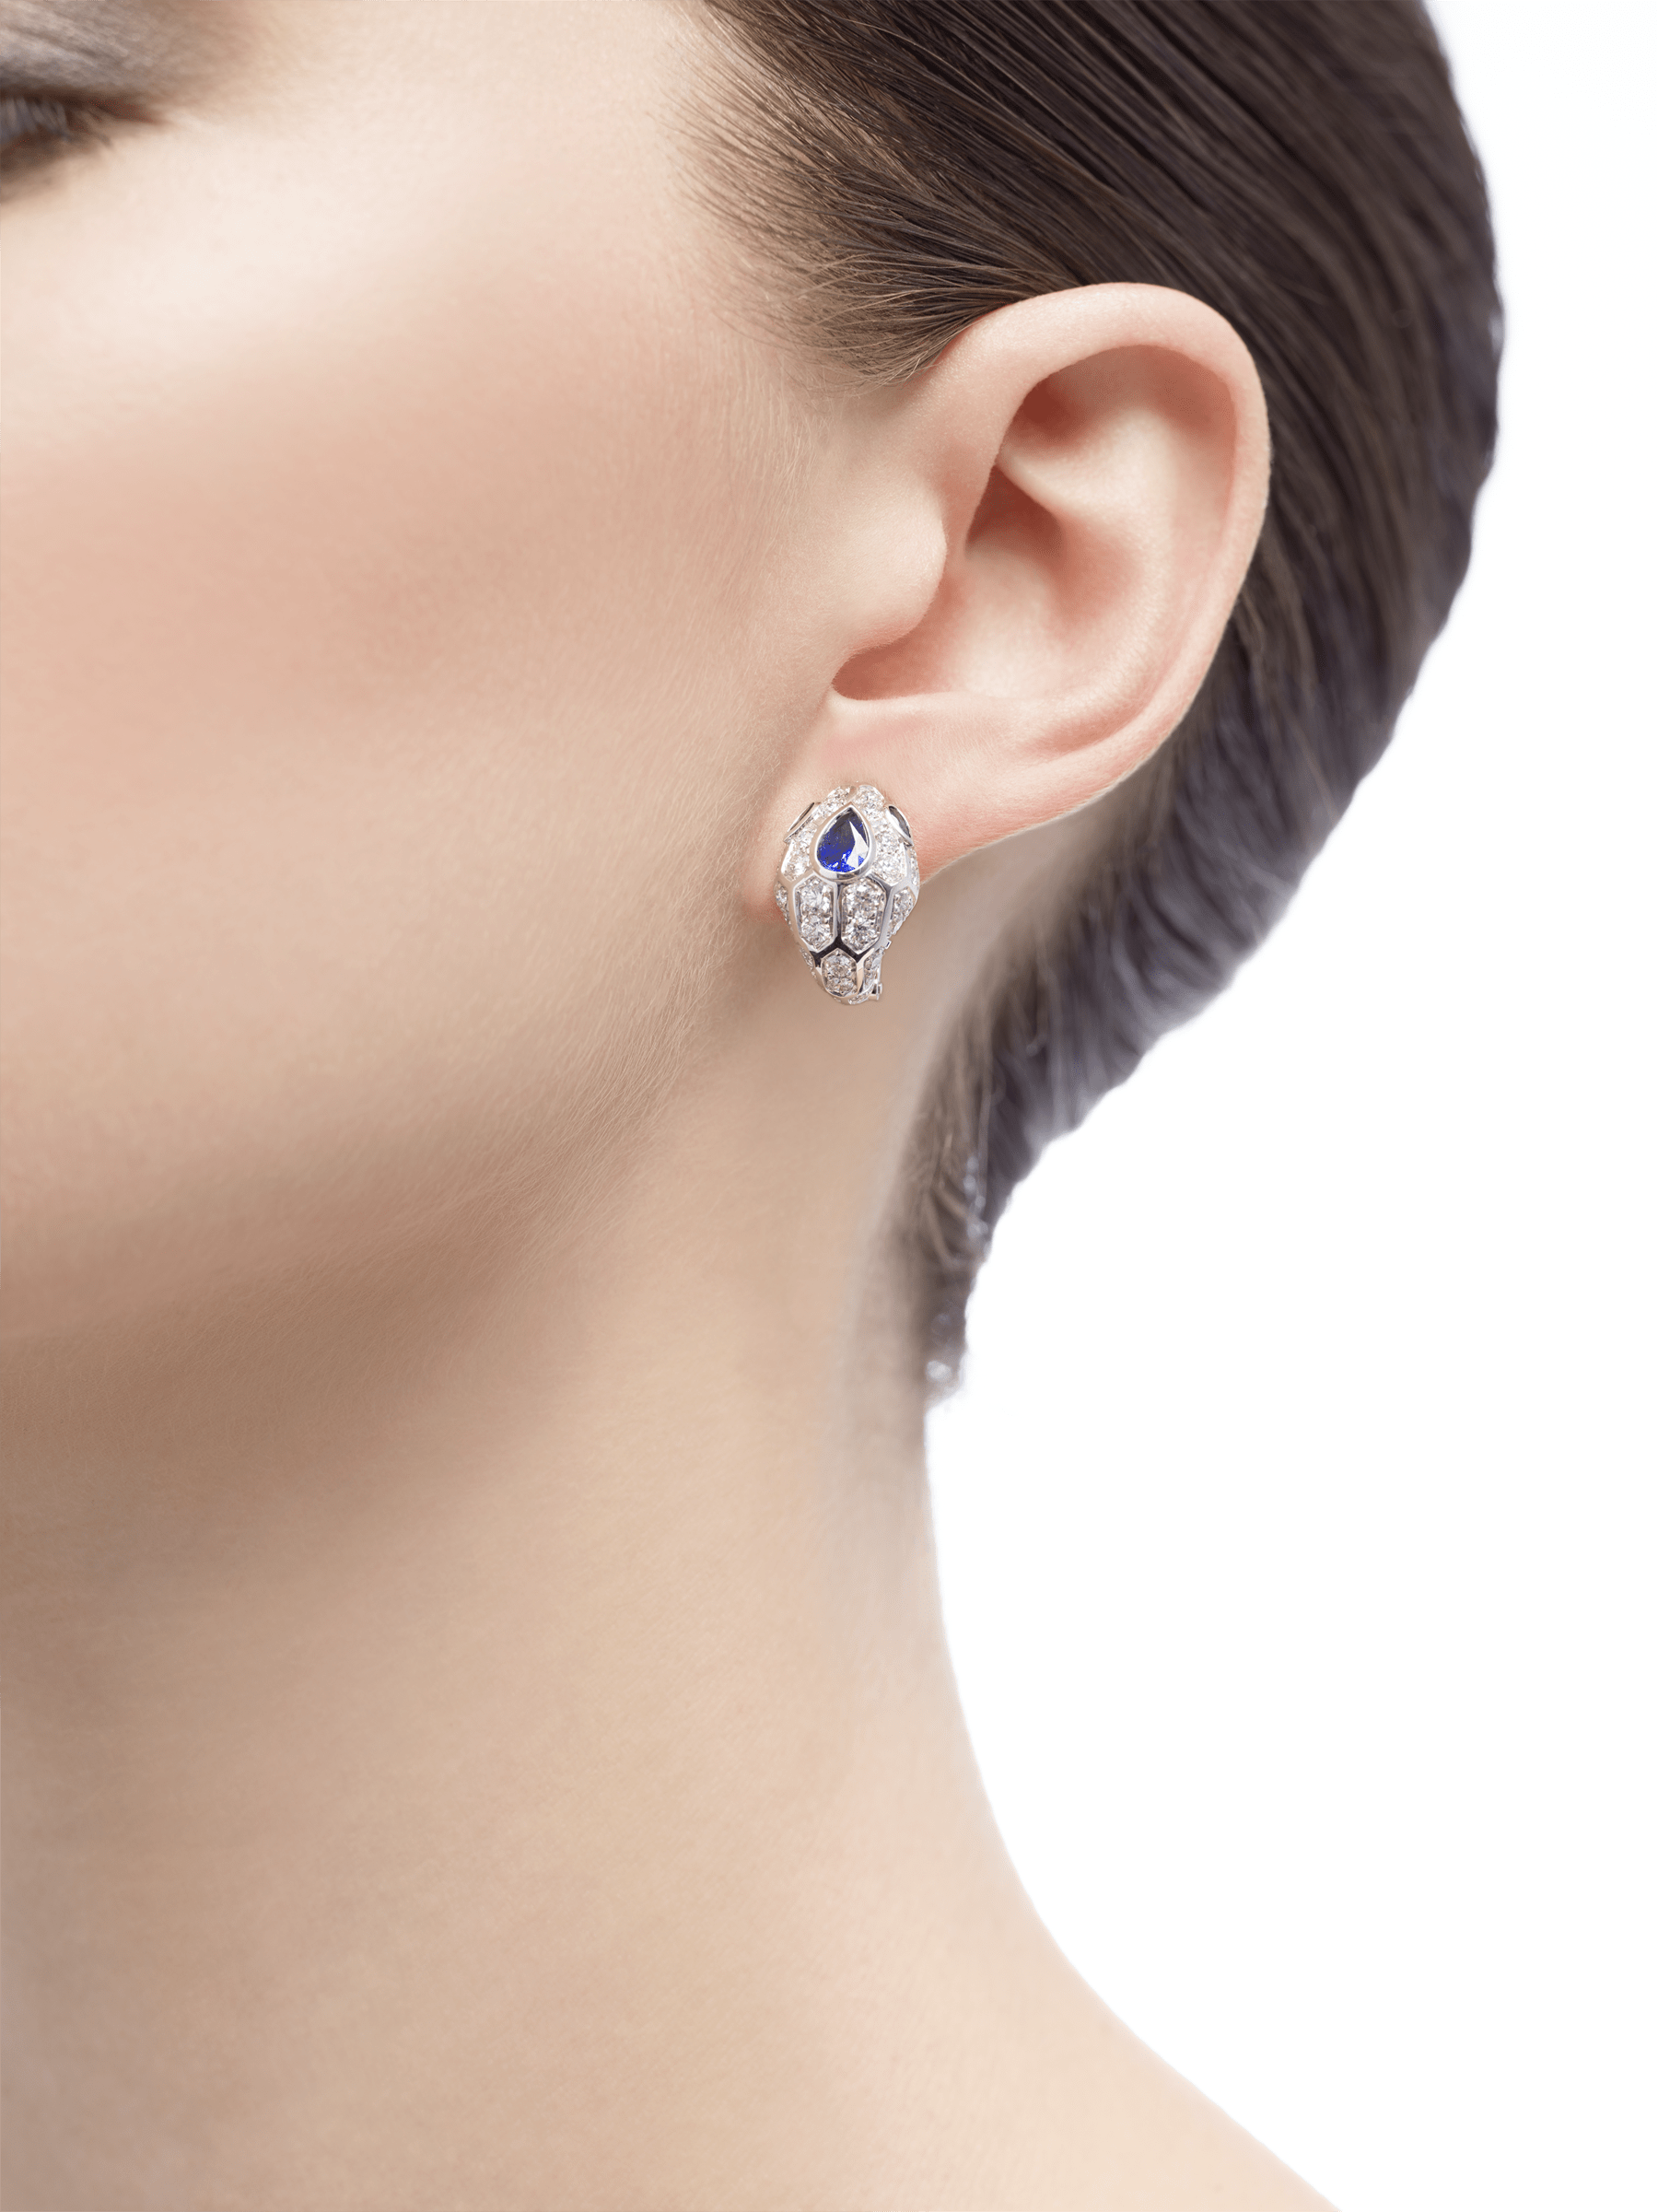 Serpenti 18 kt white gold earrings, set with a blue sapphire on the head, emerald eyes and pavé diamonds. 355355 image 3